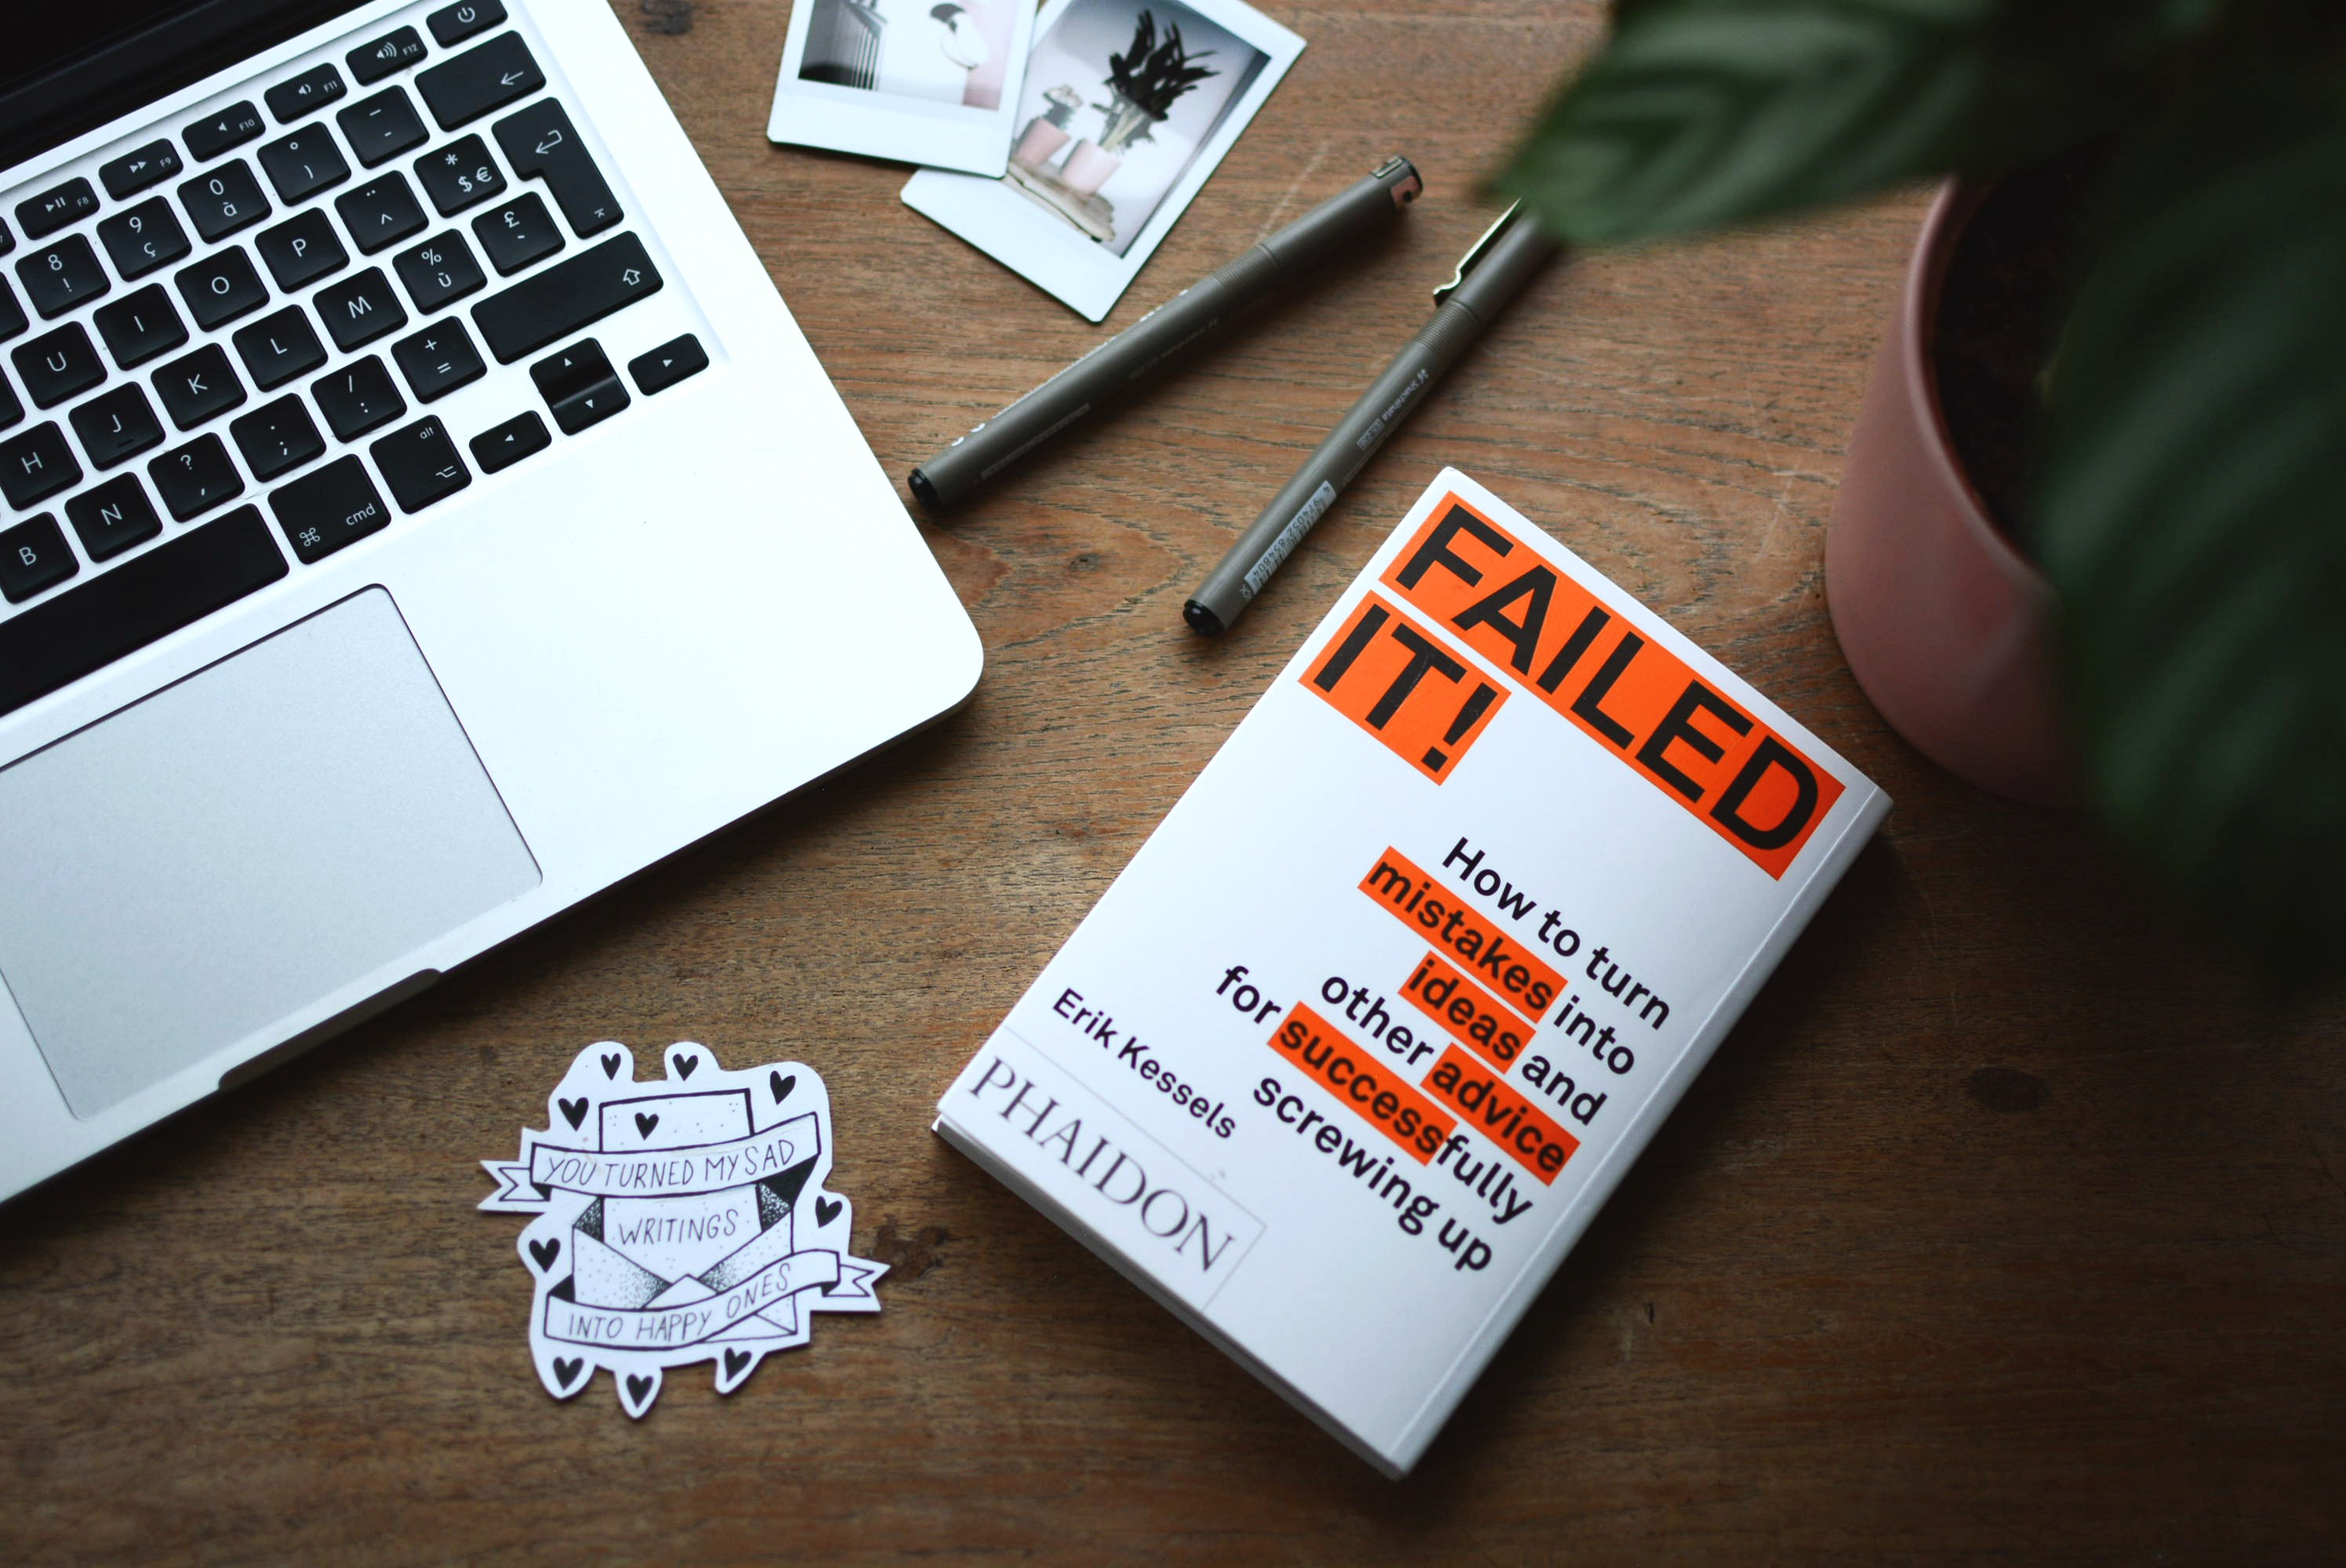 A book on a desk. The cover mentions turning mistakes into successes.